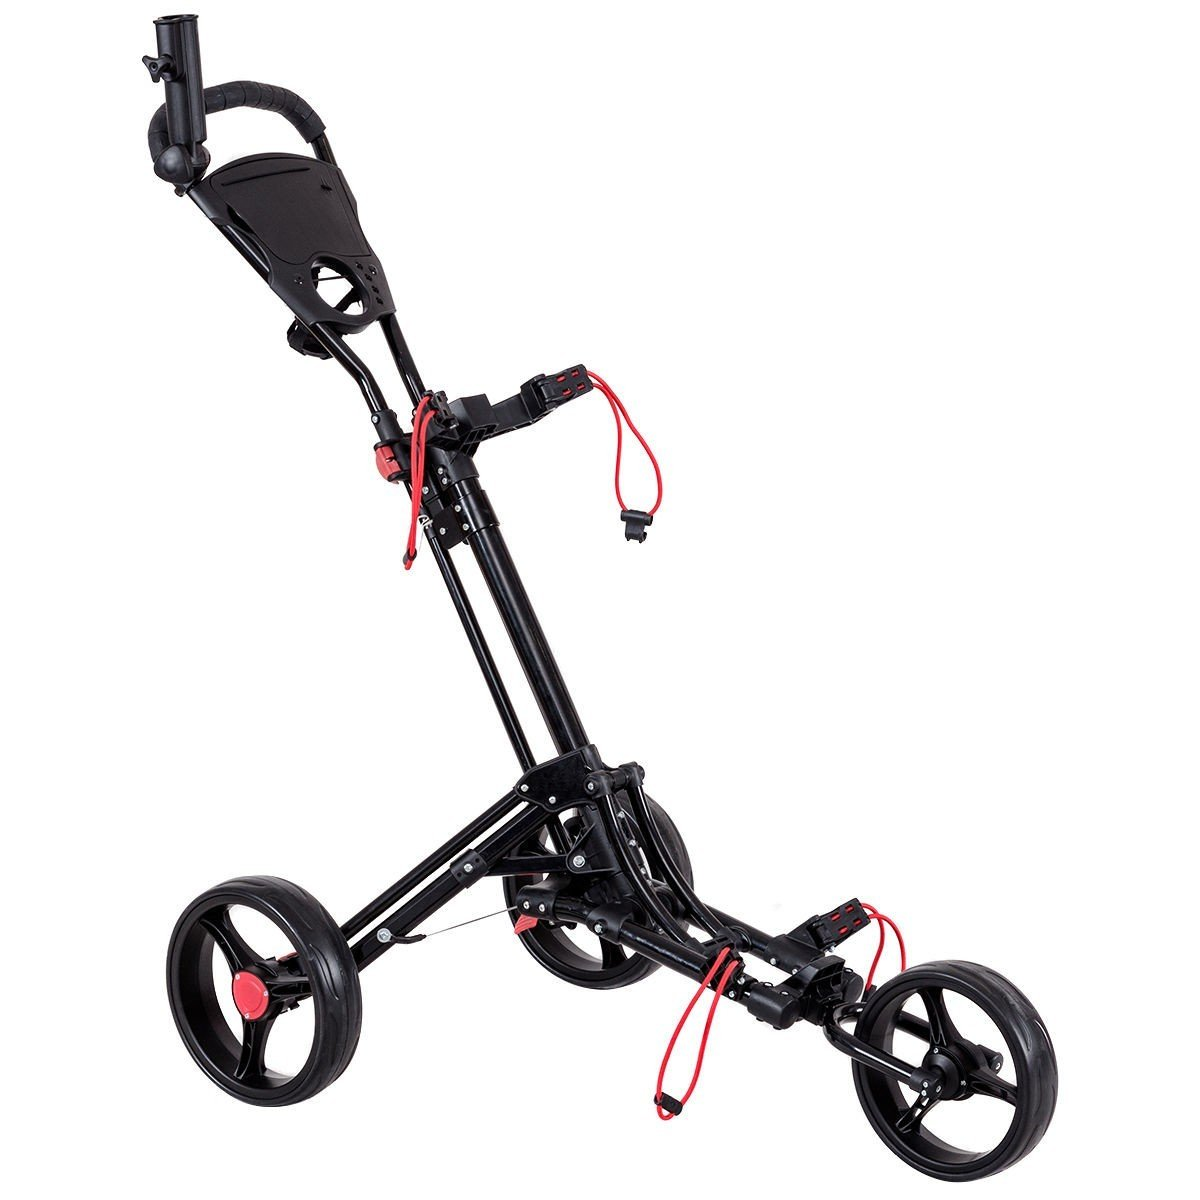 Apontus Lightweight Foldable Golf Cart with Adjustable Push Handle by Apontus